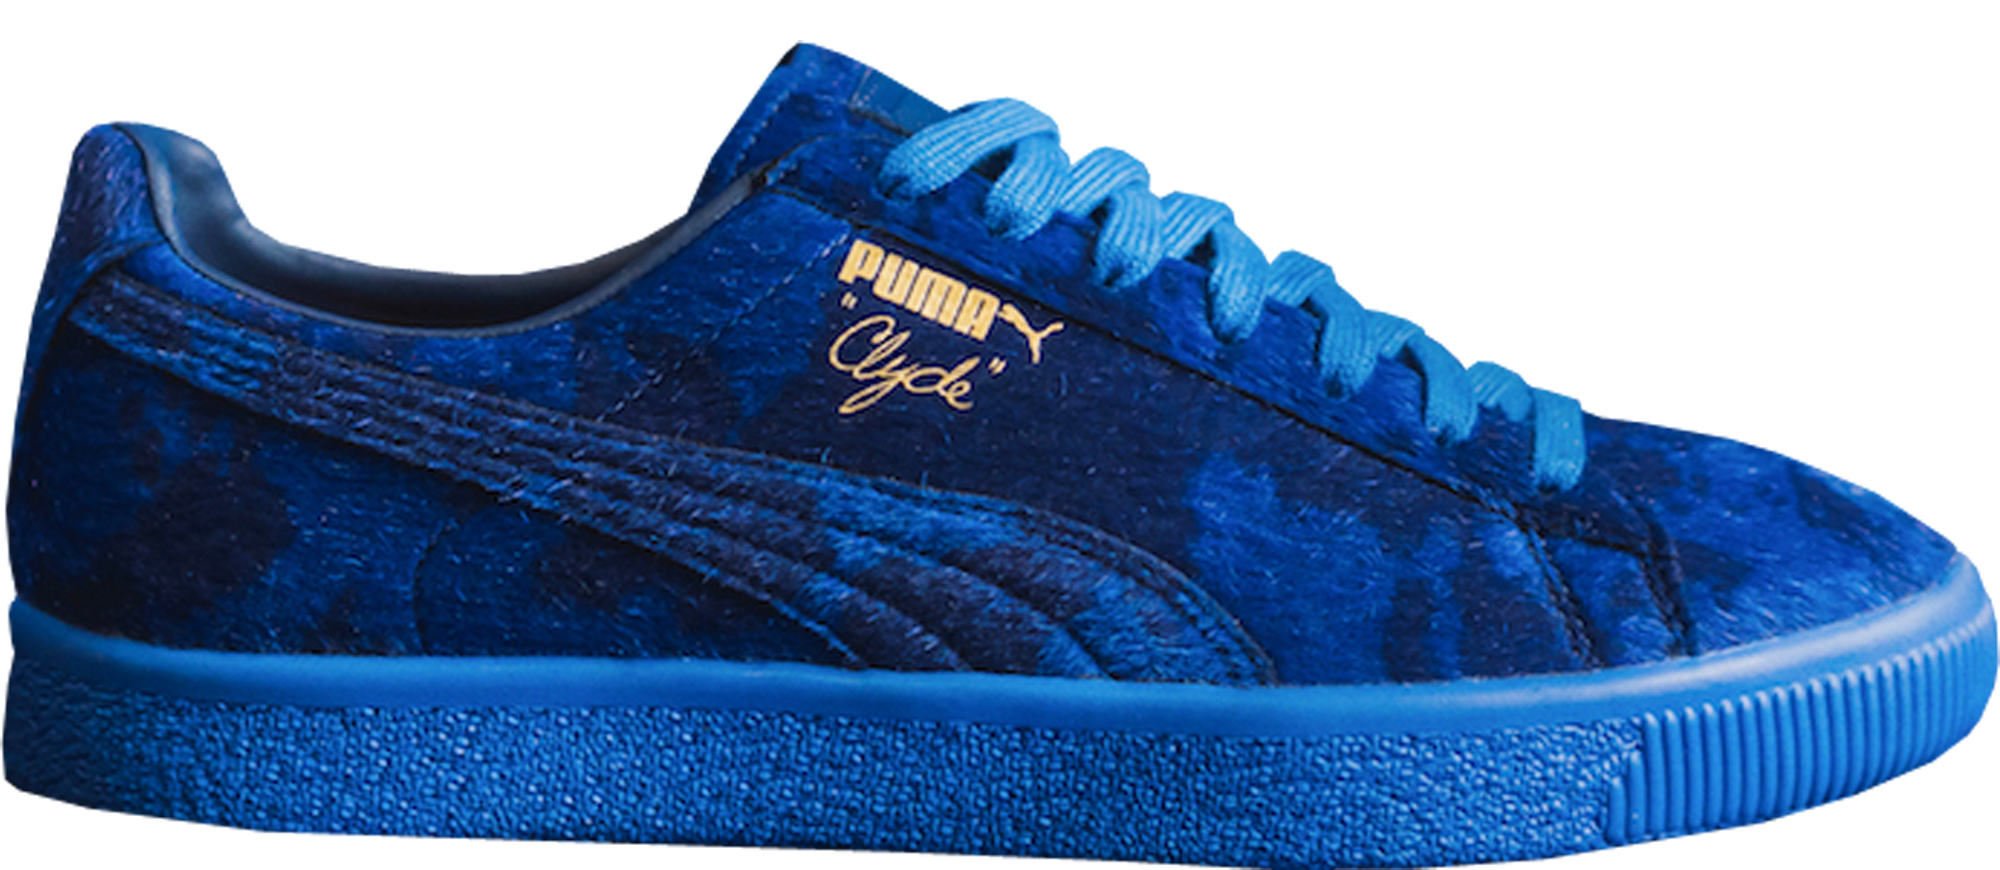 newest 4191a ab99c Packer Shoes x Puma Clyde Cow Suit Blue - StockX News